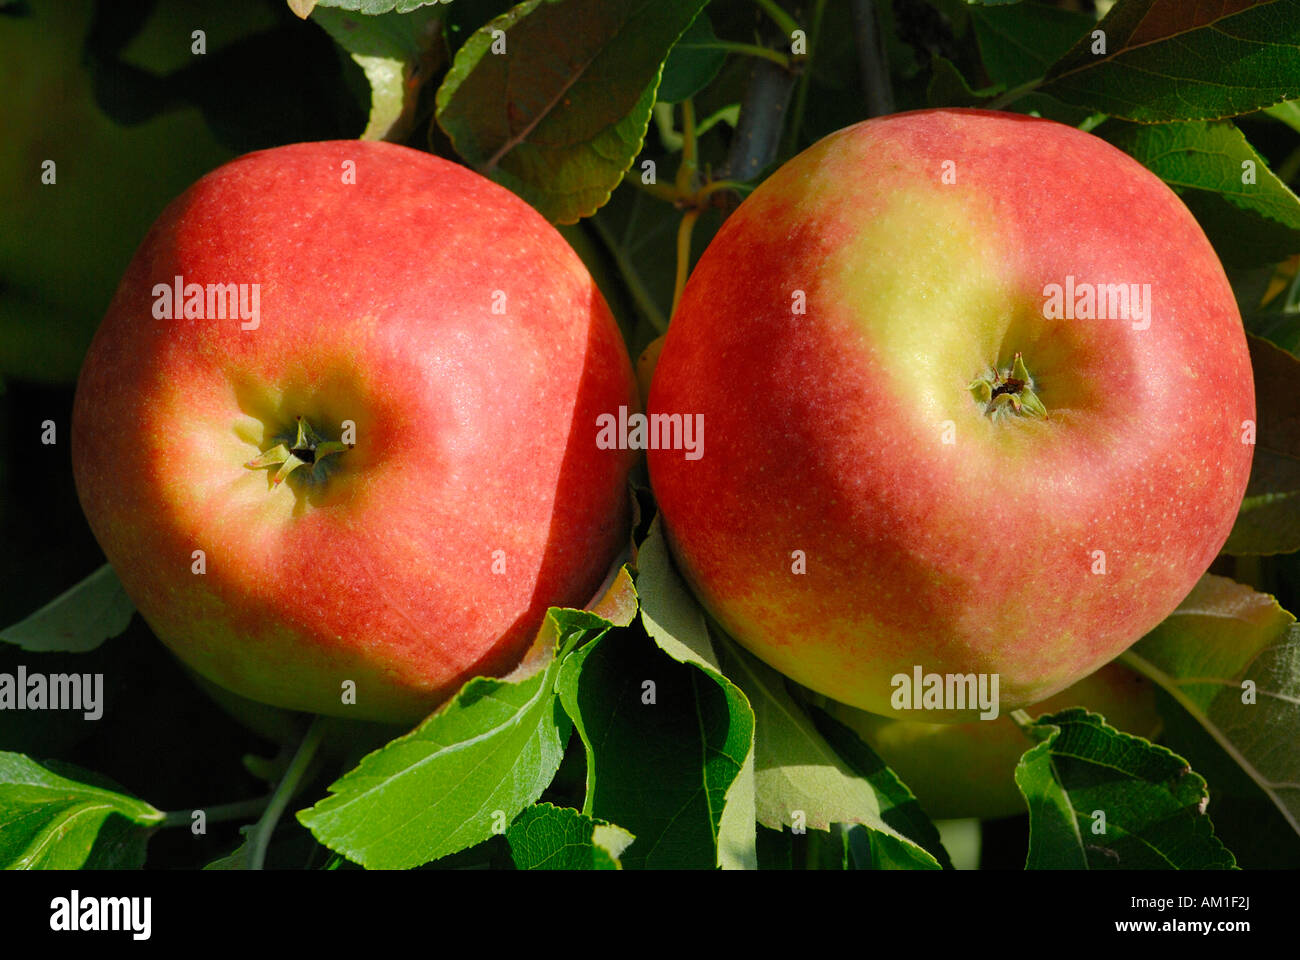 Red apples on a tree (Malus domestica) - Germany, Europe. Stock Photo